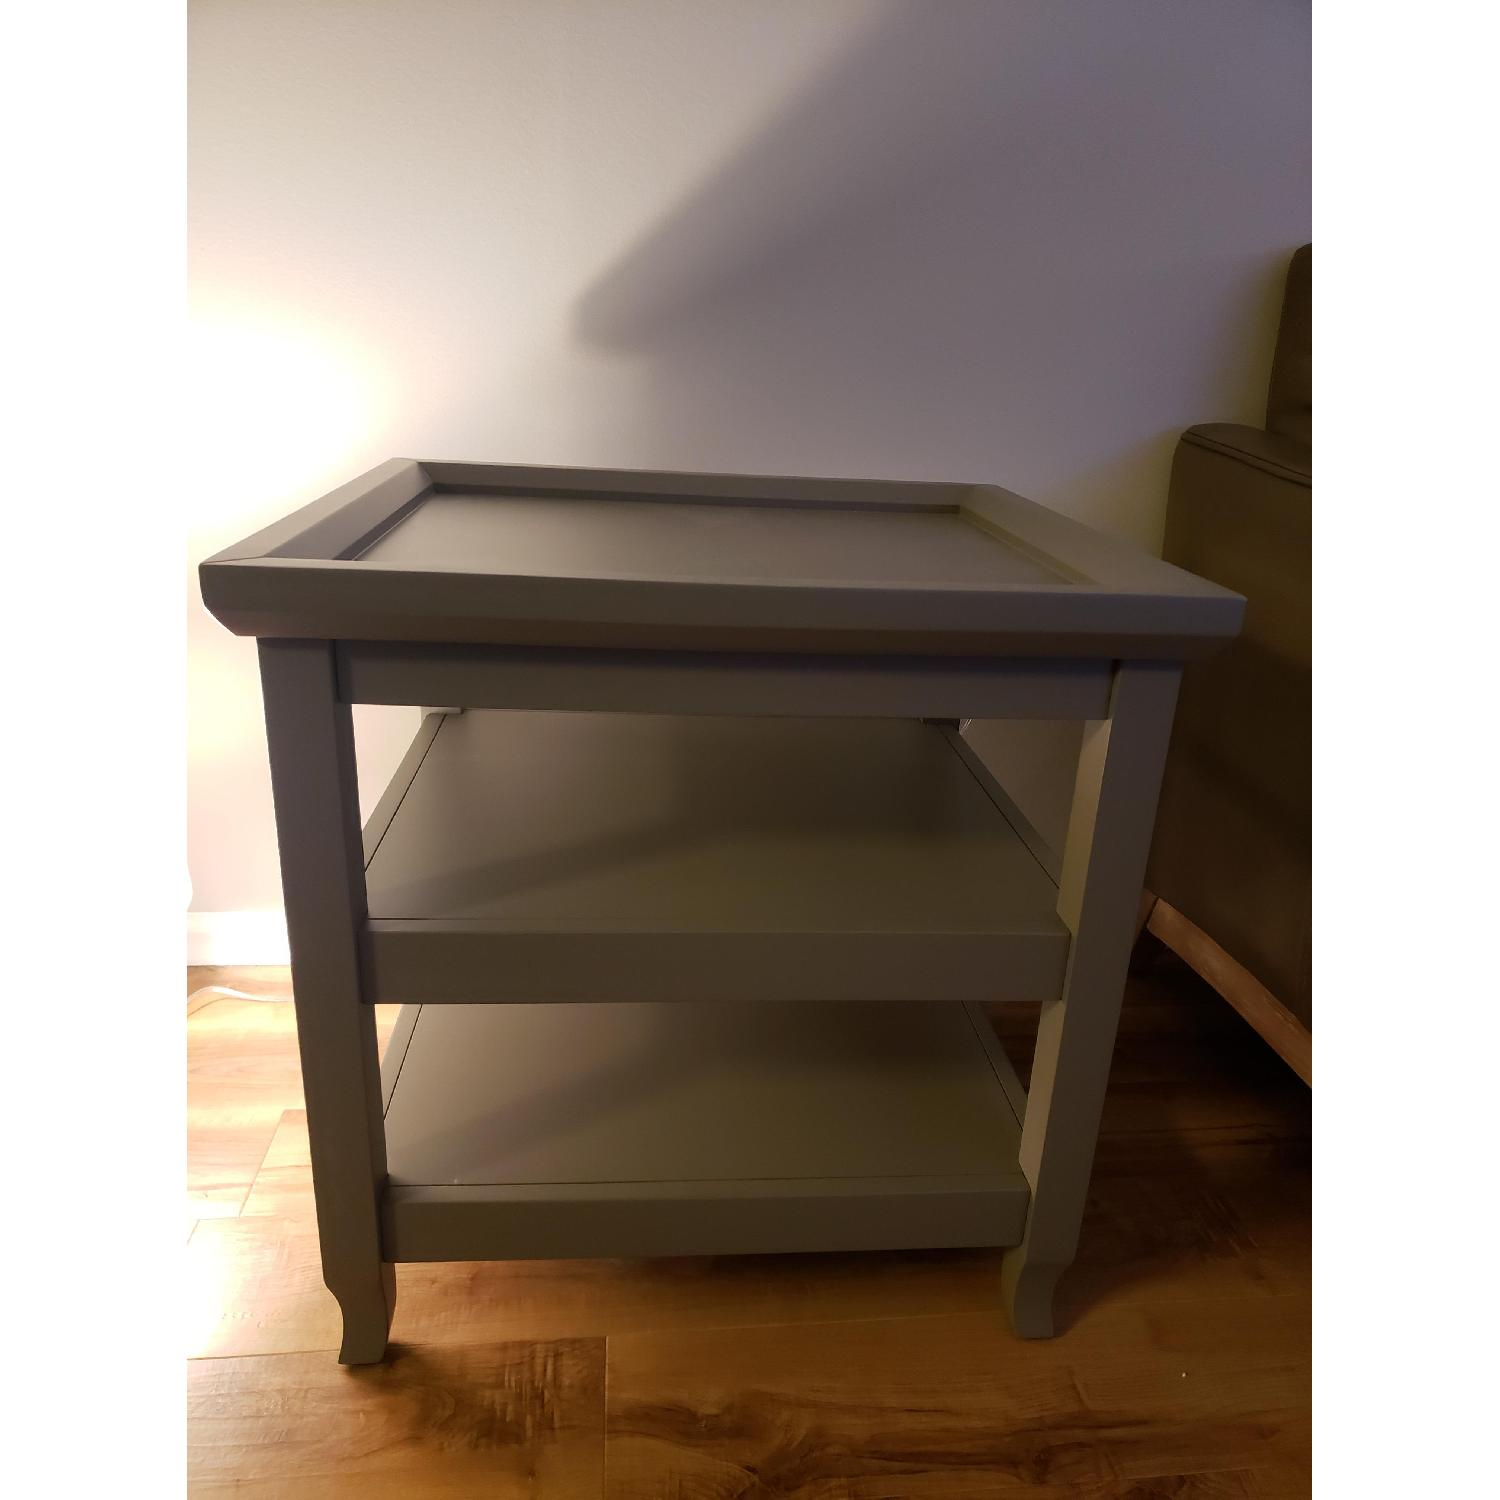 Ballard Designs Morgan End Table (Gray) - image-2